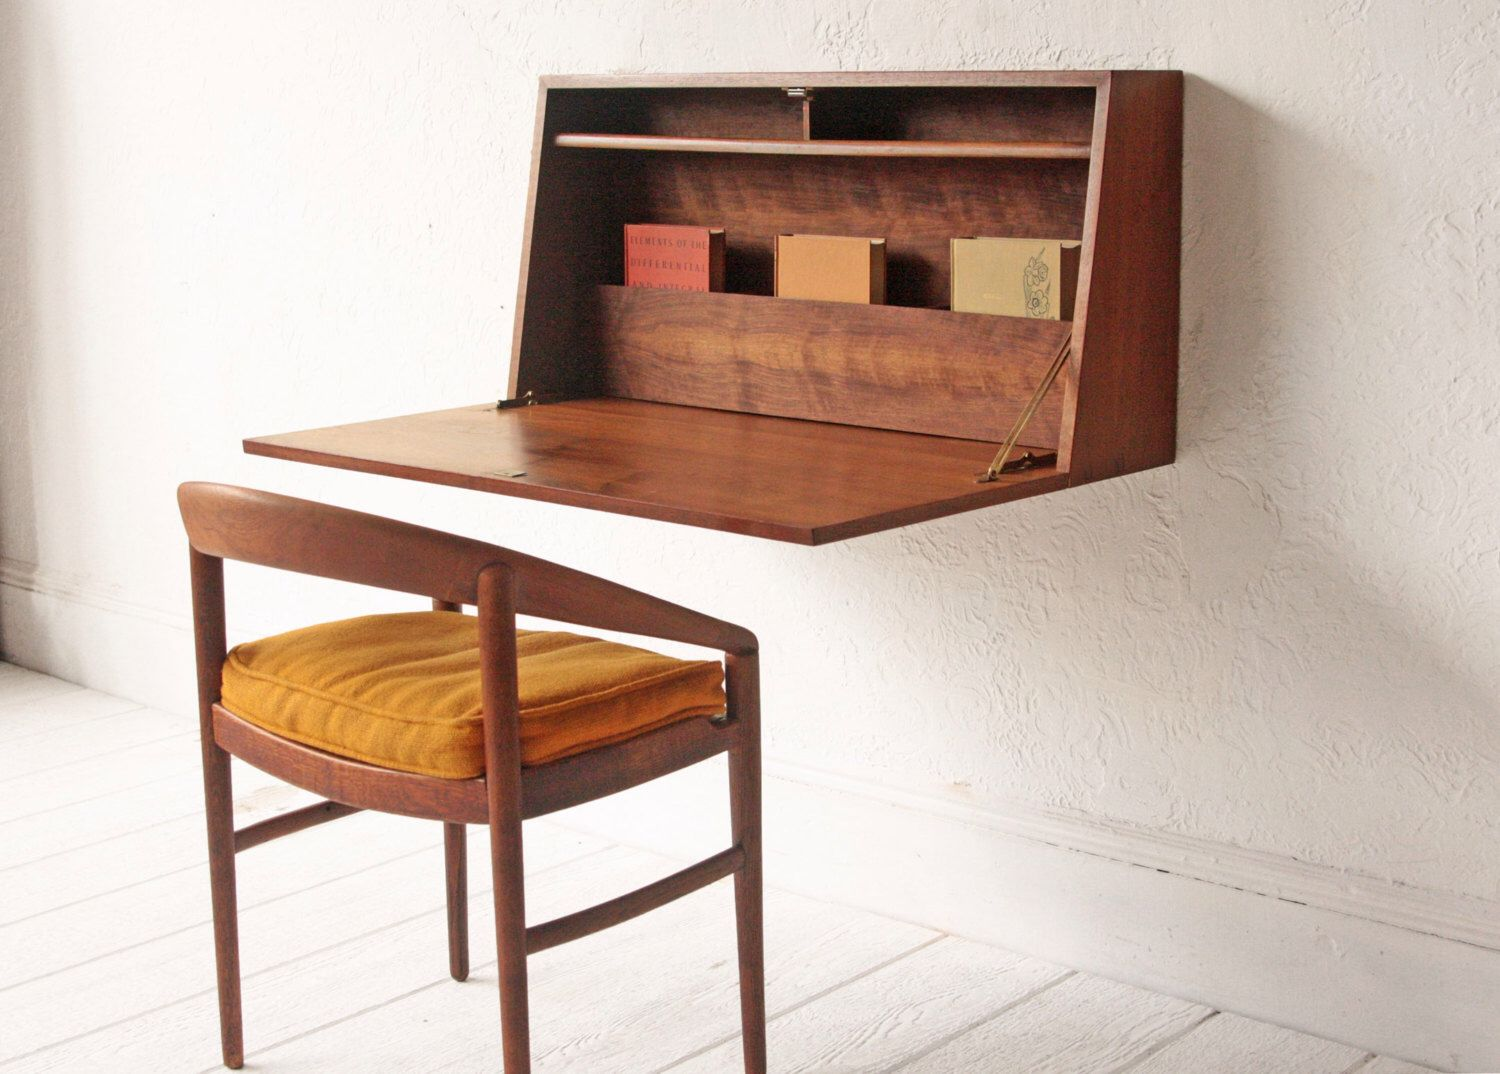 Floating Collapsible Desk Mid Century Cabinet Cupboard Wall Etsy Mid Century Desk Mid Century Cabinet Mid Century Modern Desk